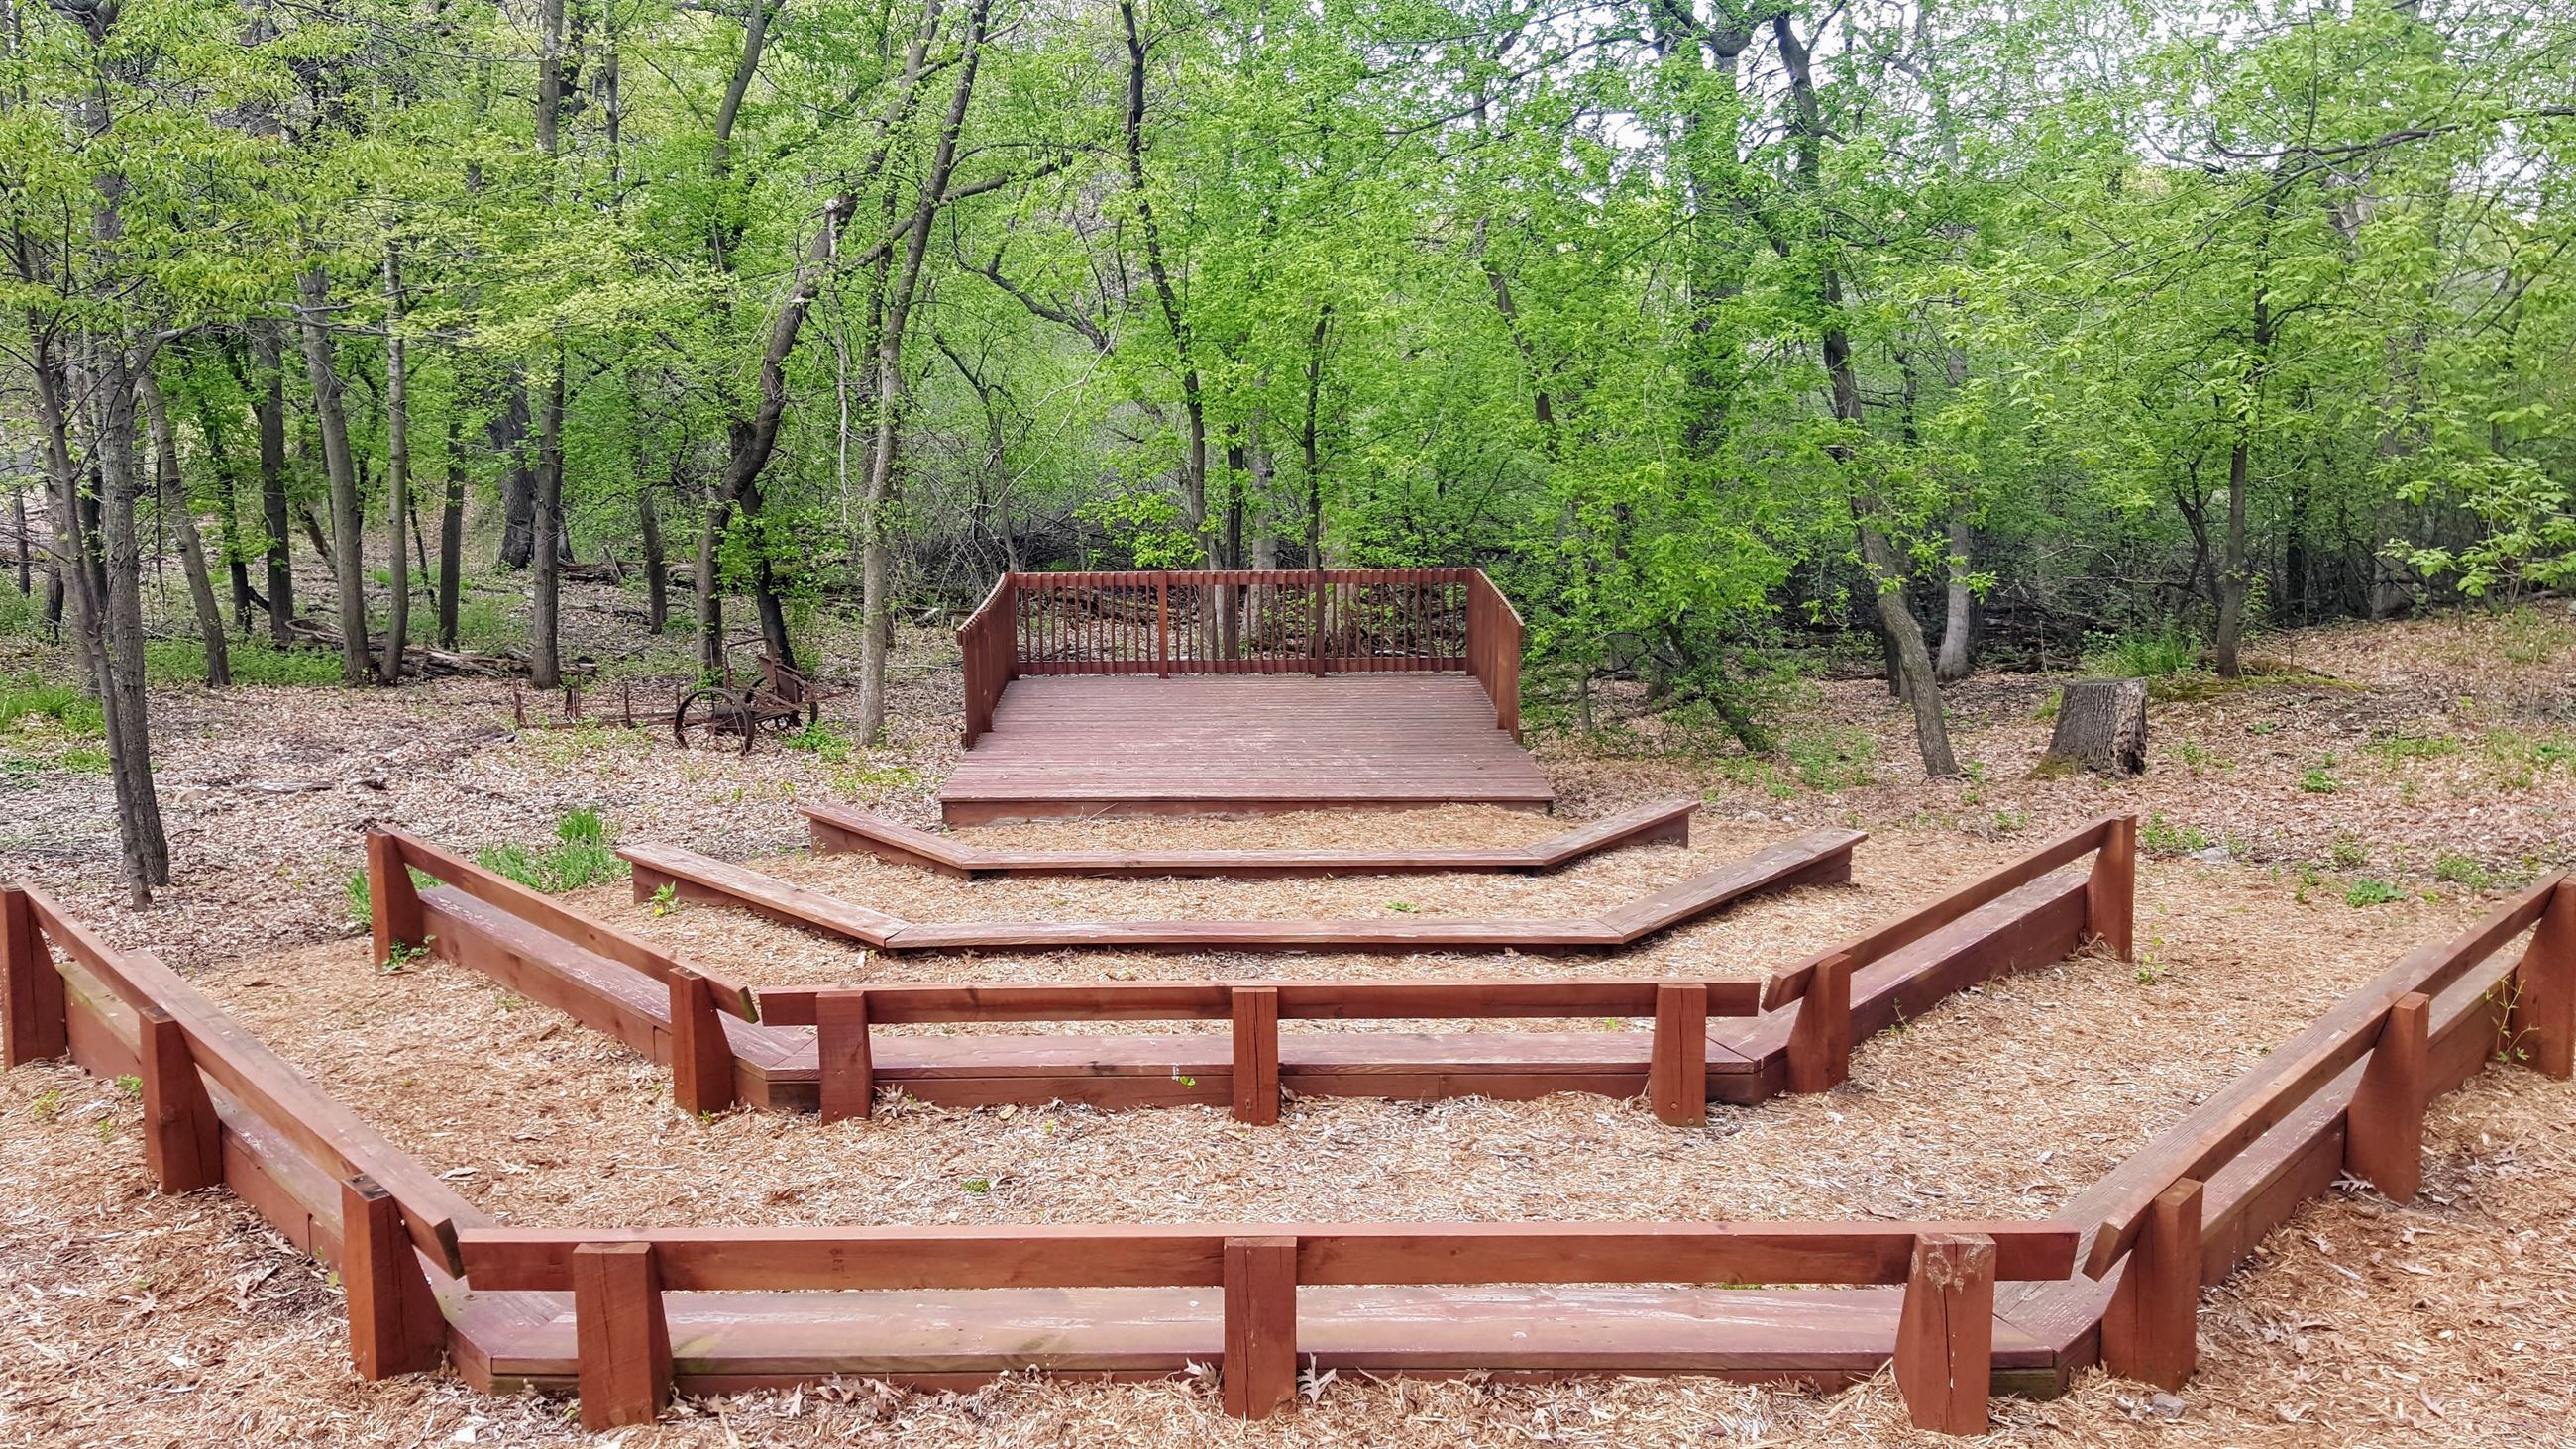 Outdoor Amphitheater with Wooden Benches